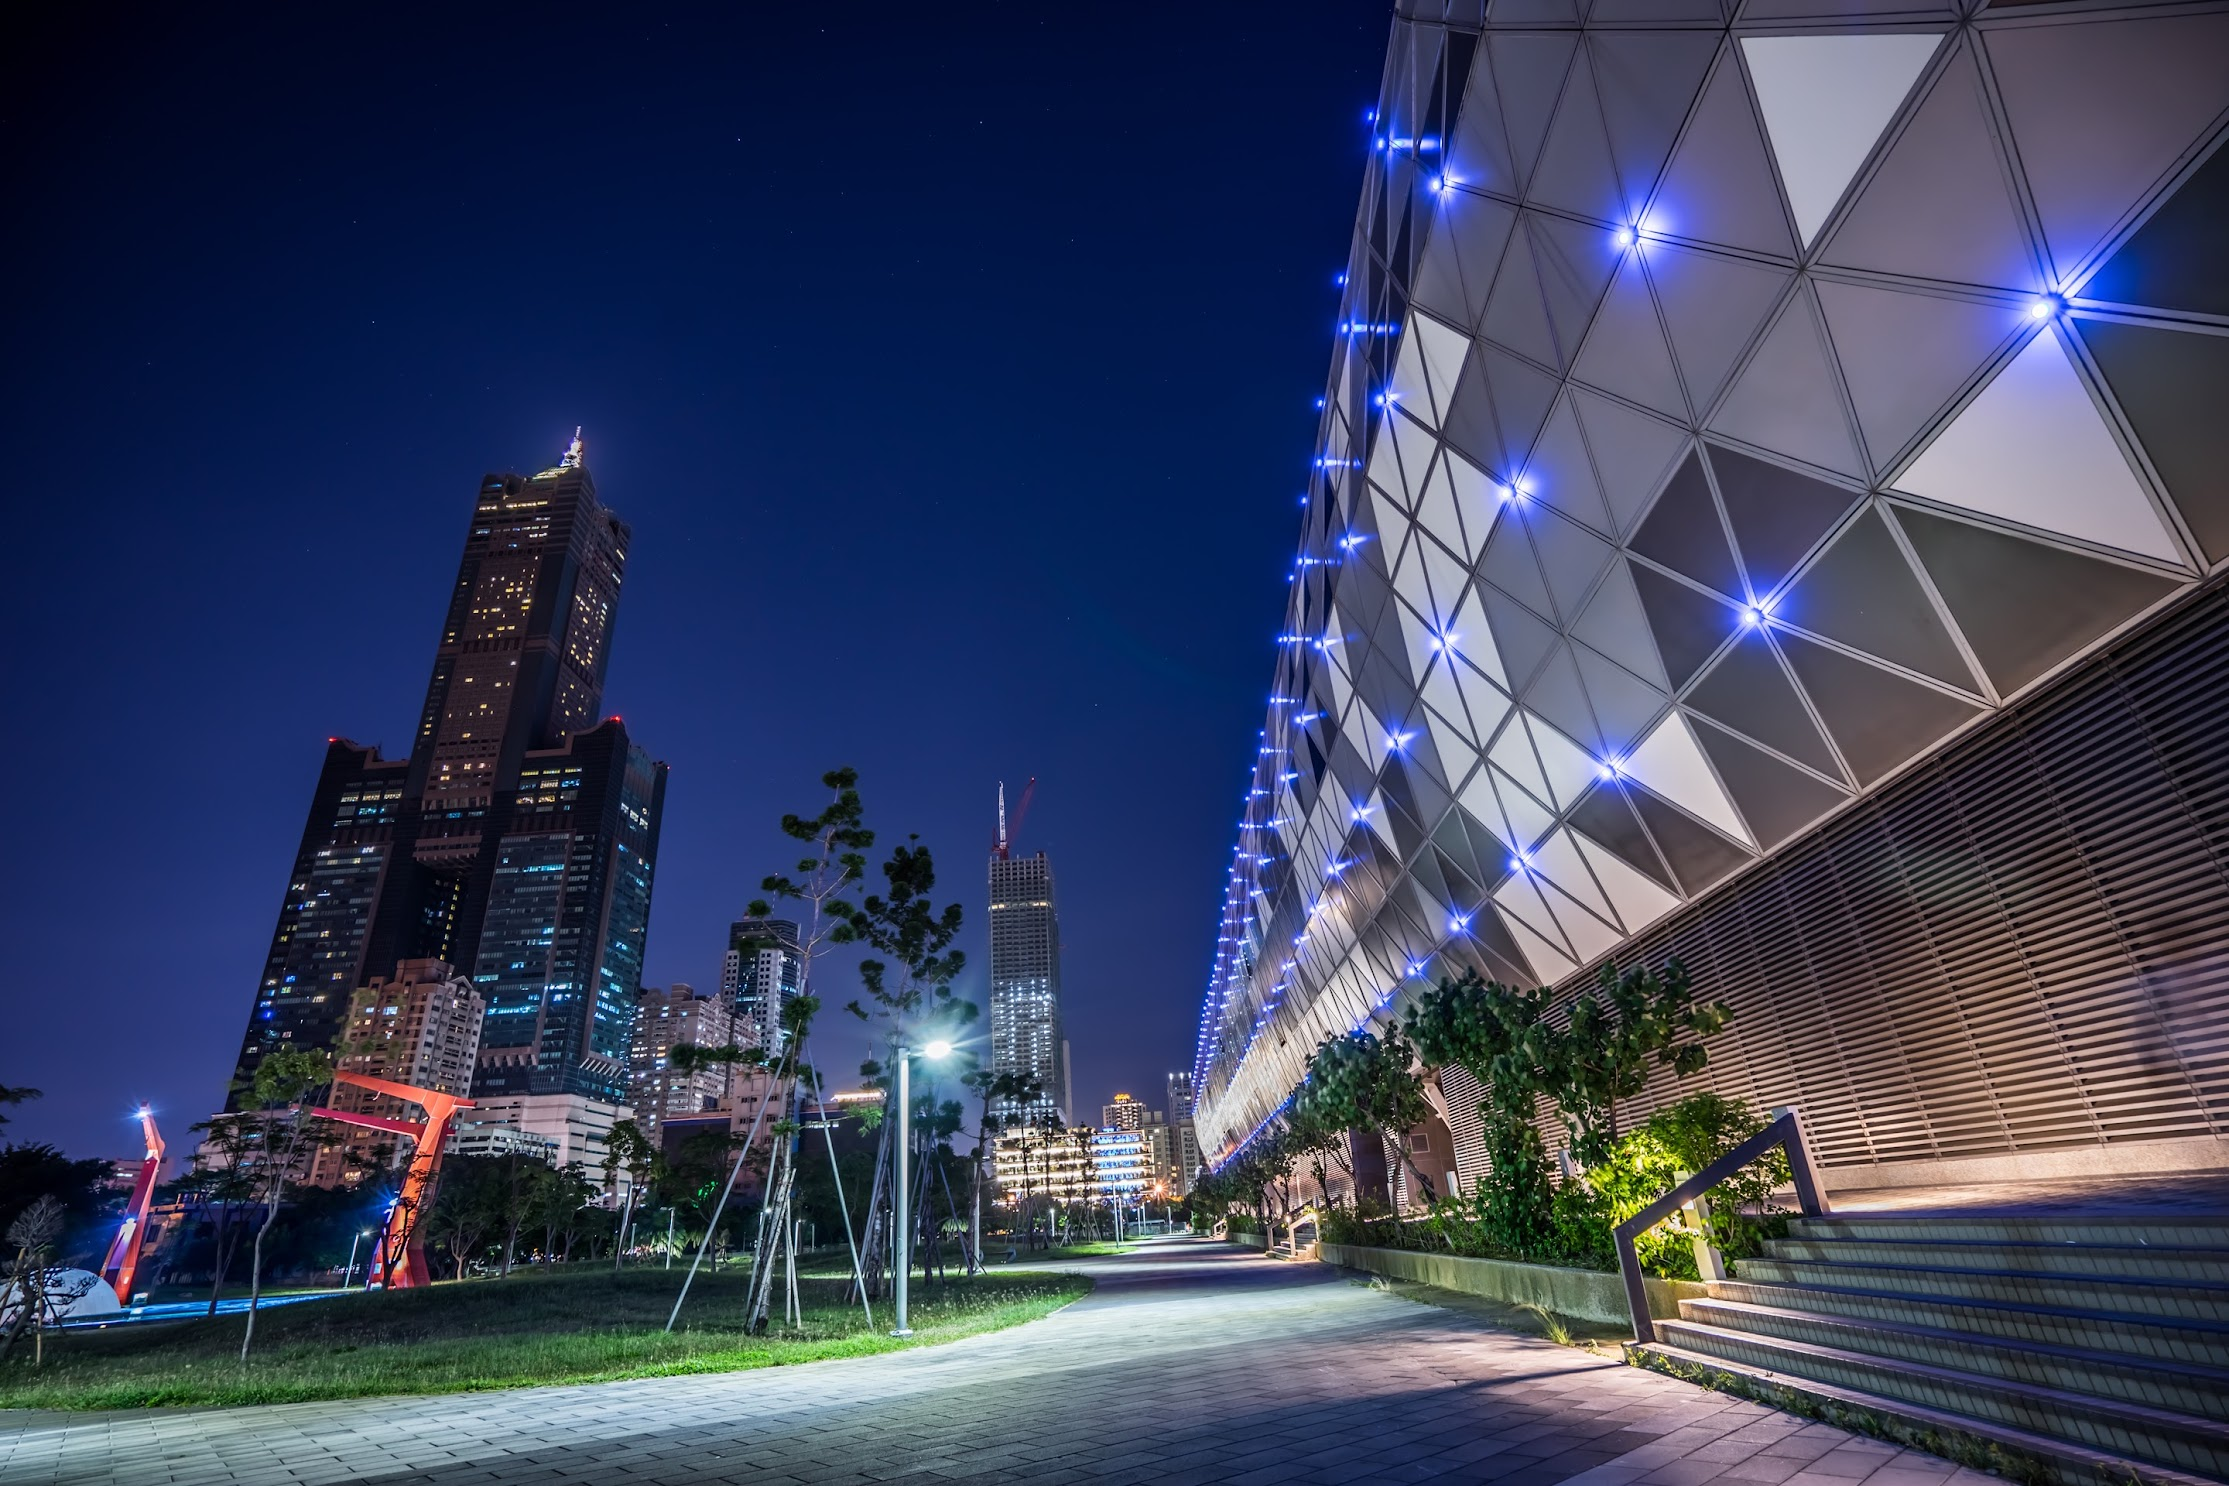 Taiwan Kaohsiung Exhibition Center night view2